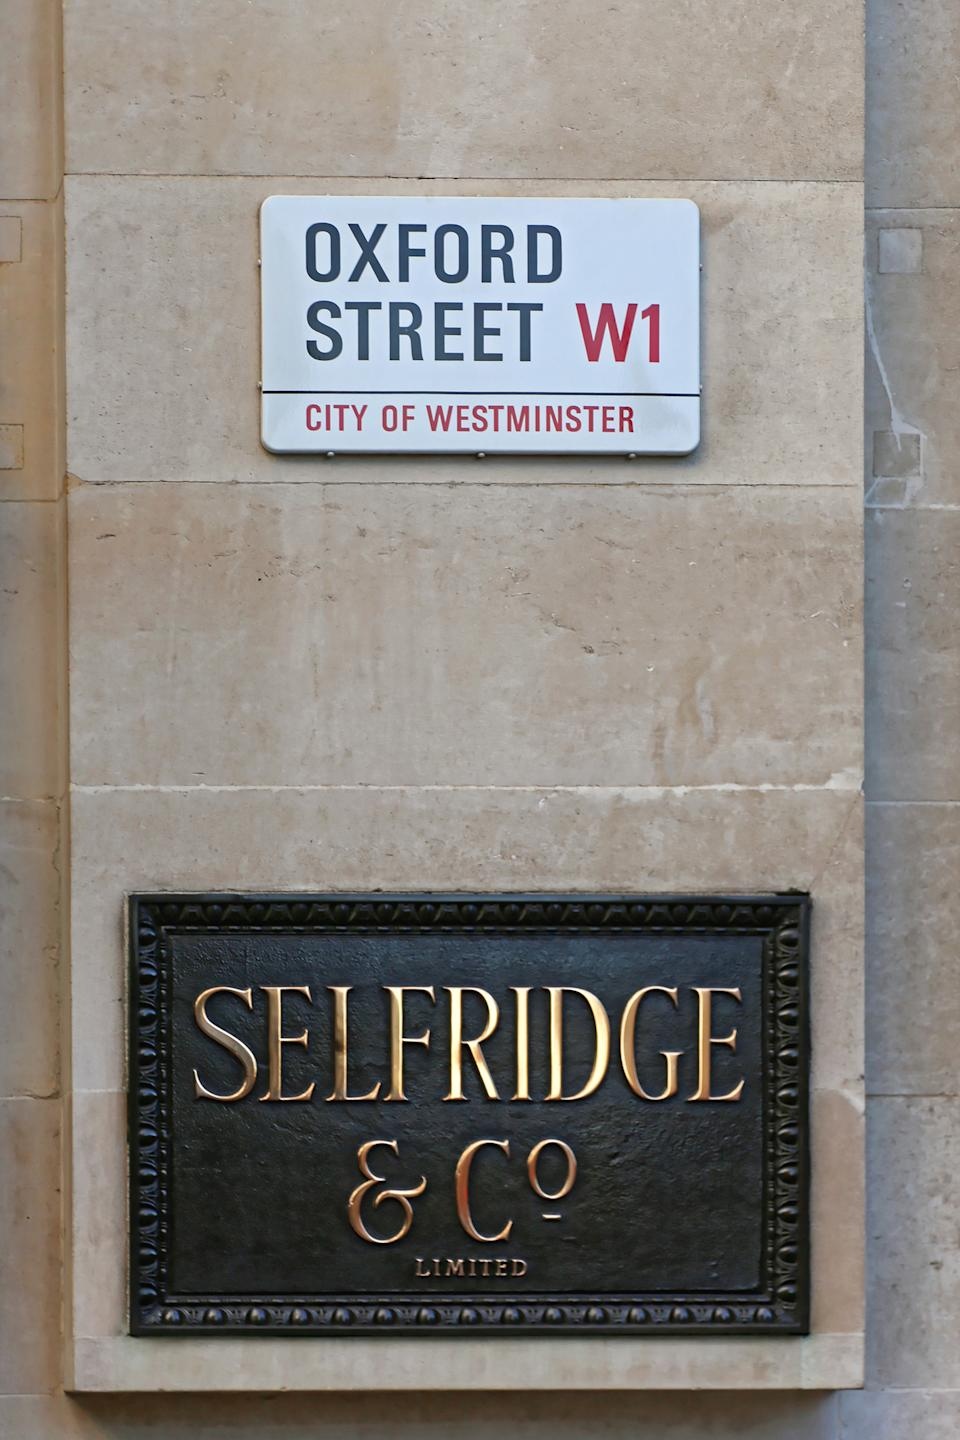 The store was founded in 1909 by Harry Gordon Selfridge. (Getty Images)